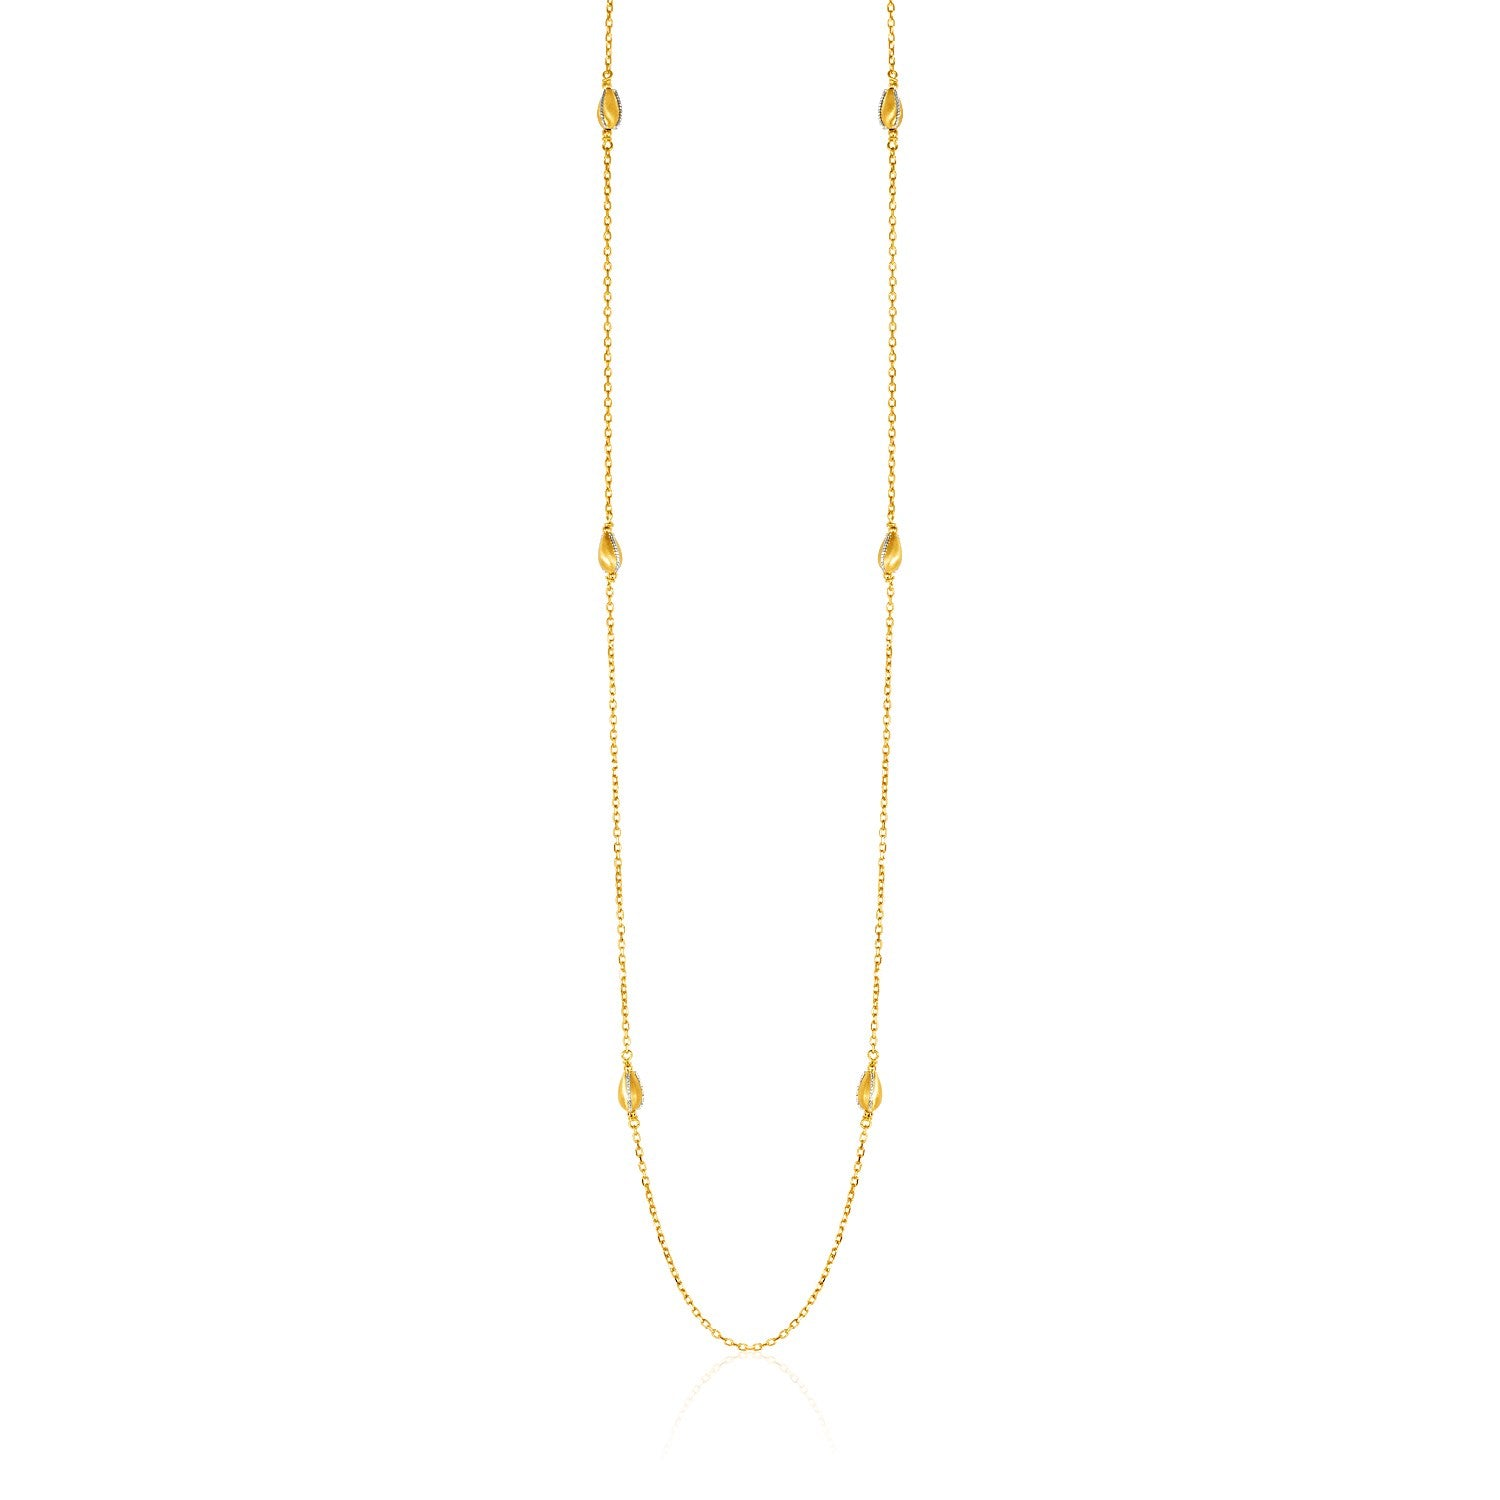 Unique Hollywood Style 14K Two-Tone Yellow and White Gold Necklace with Teardrop Motifs